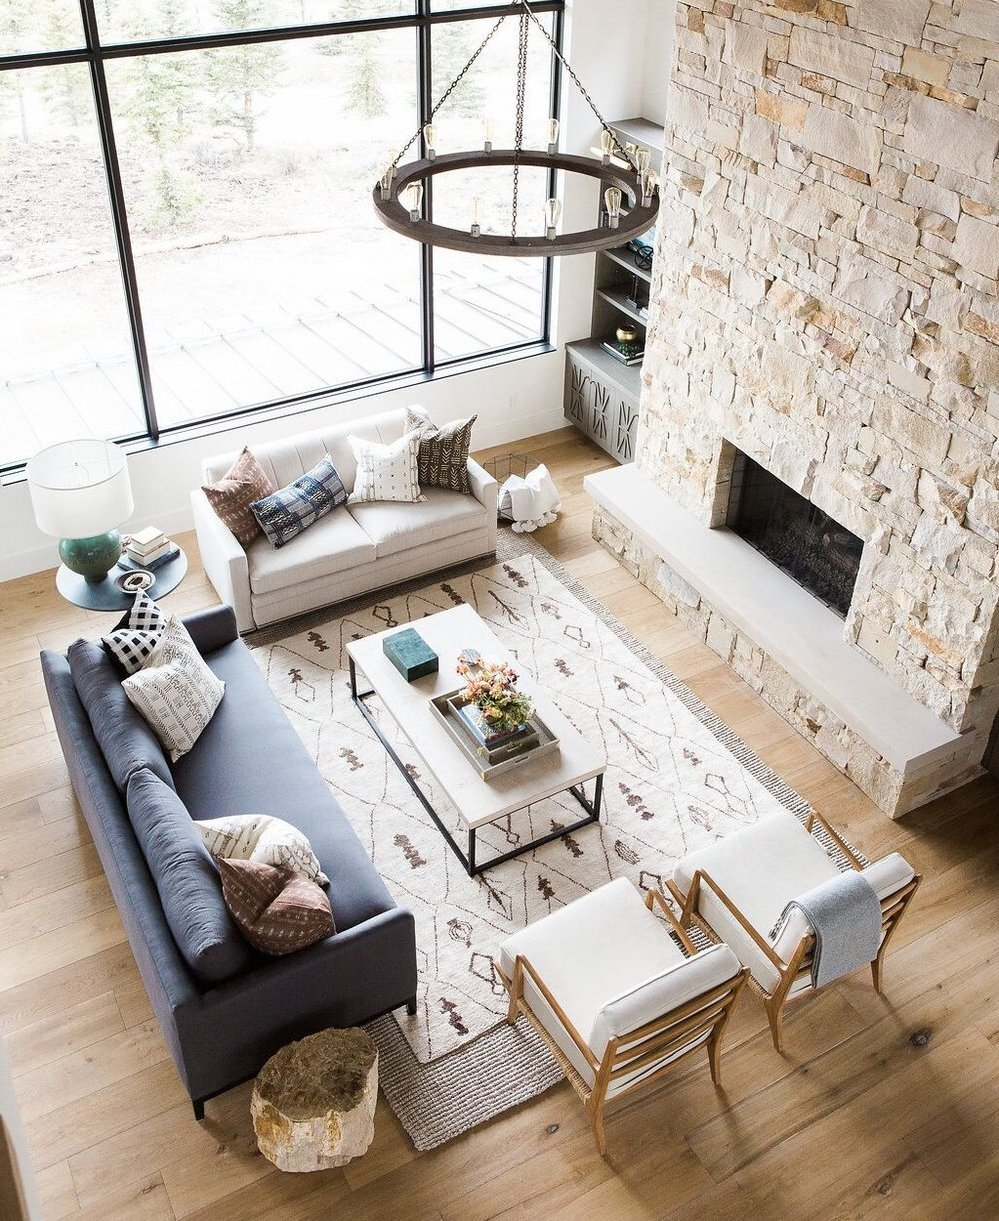 Great+room+with+dramatic+stone+fireplace,+layered+rugs,+and+neutral+color+scheme.jpg